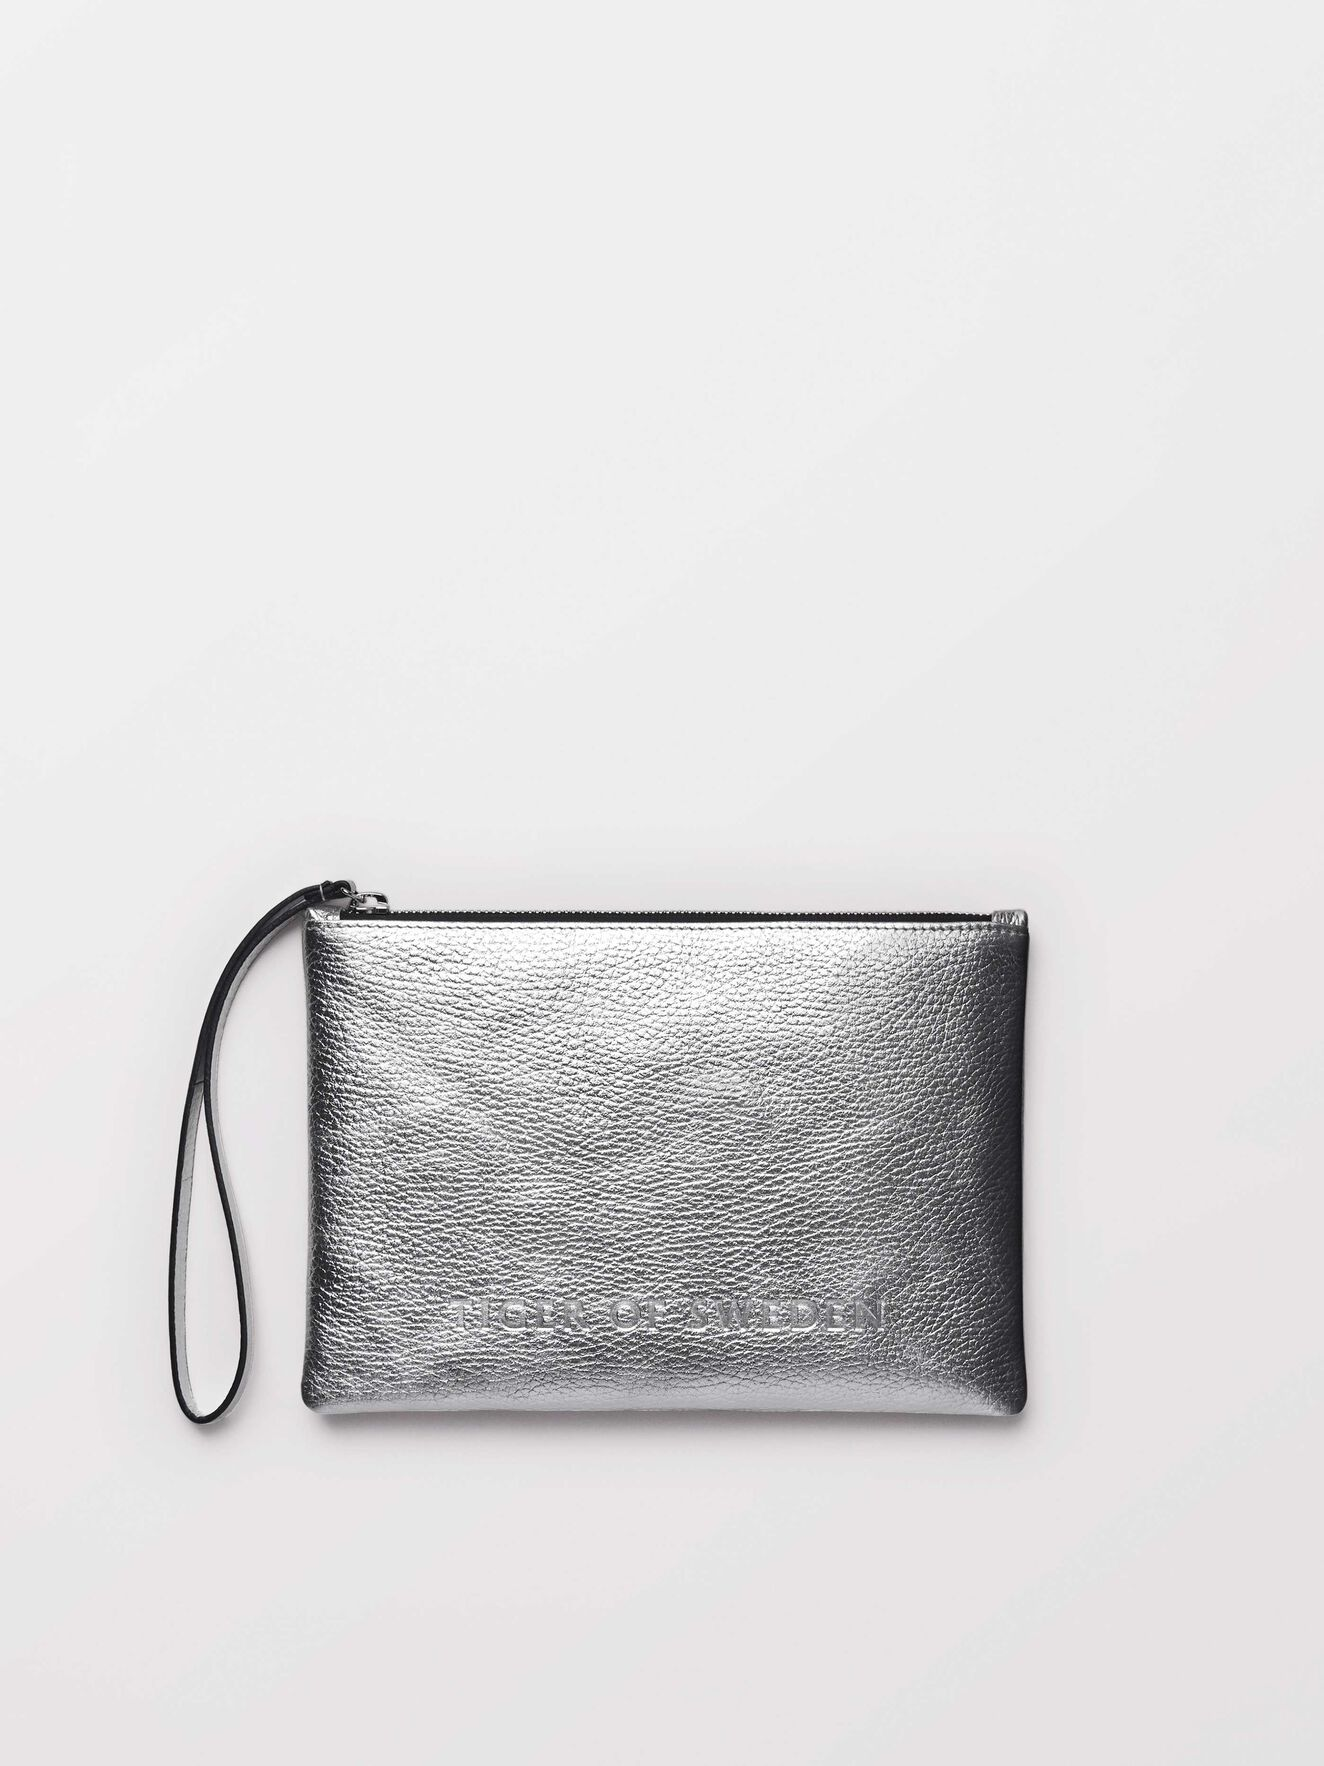 Ermella clutch in Silver from Tiger of Sweden